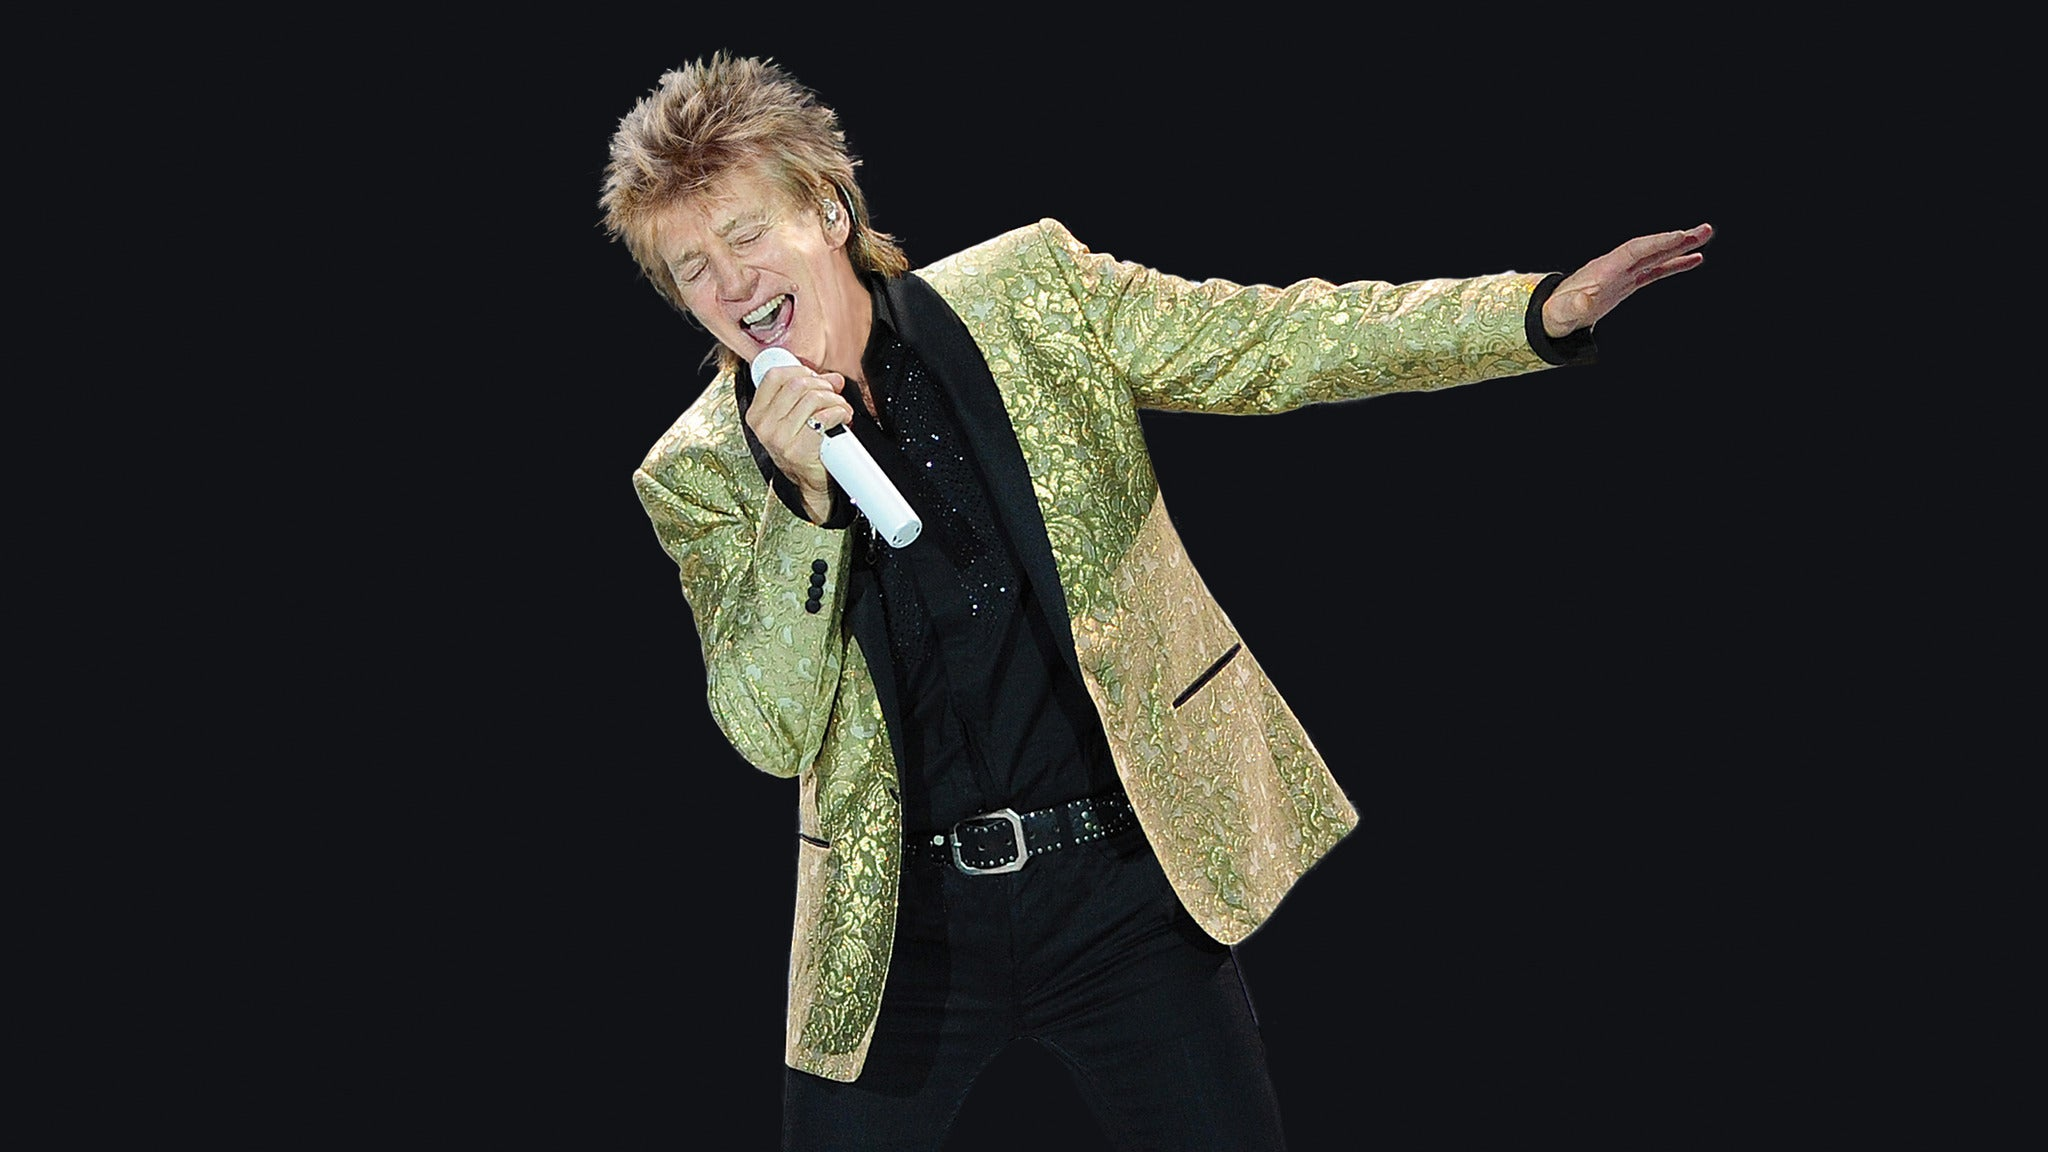 Rod Stewart at Ameris Bank Amphitheatre